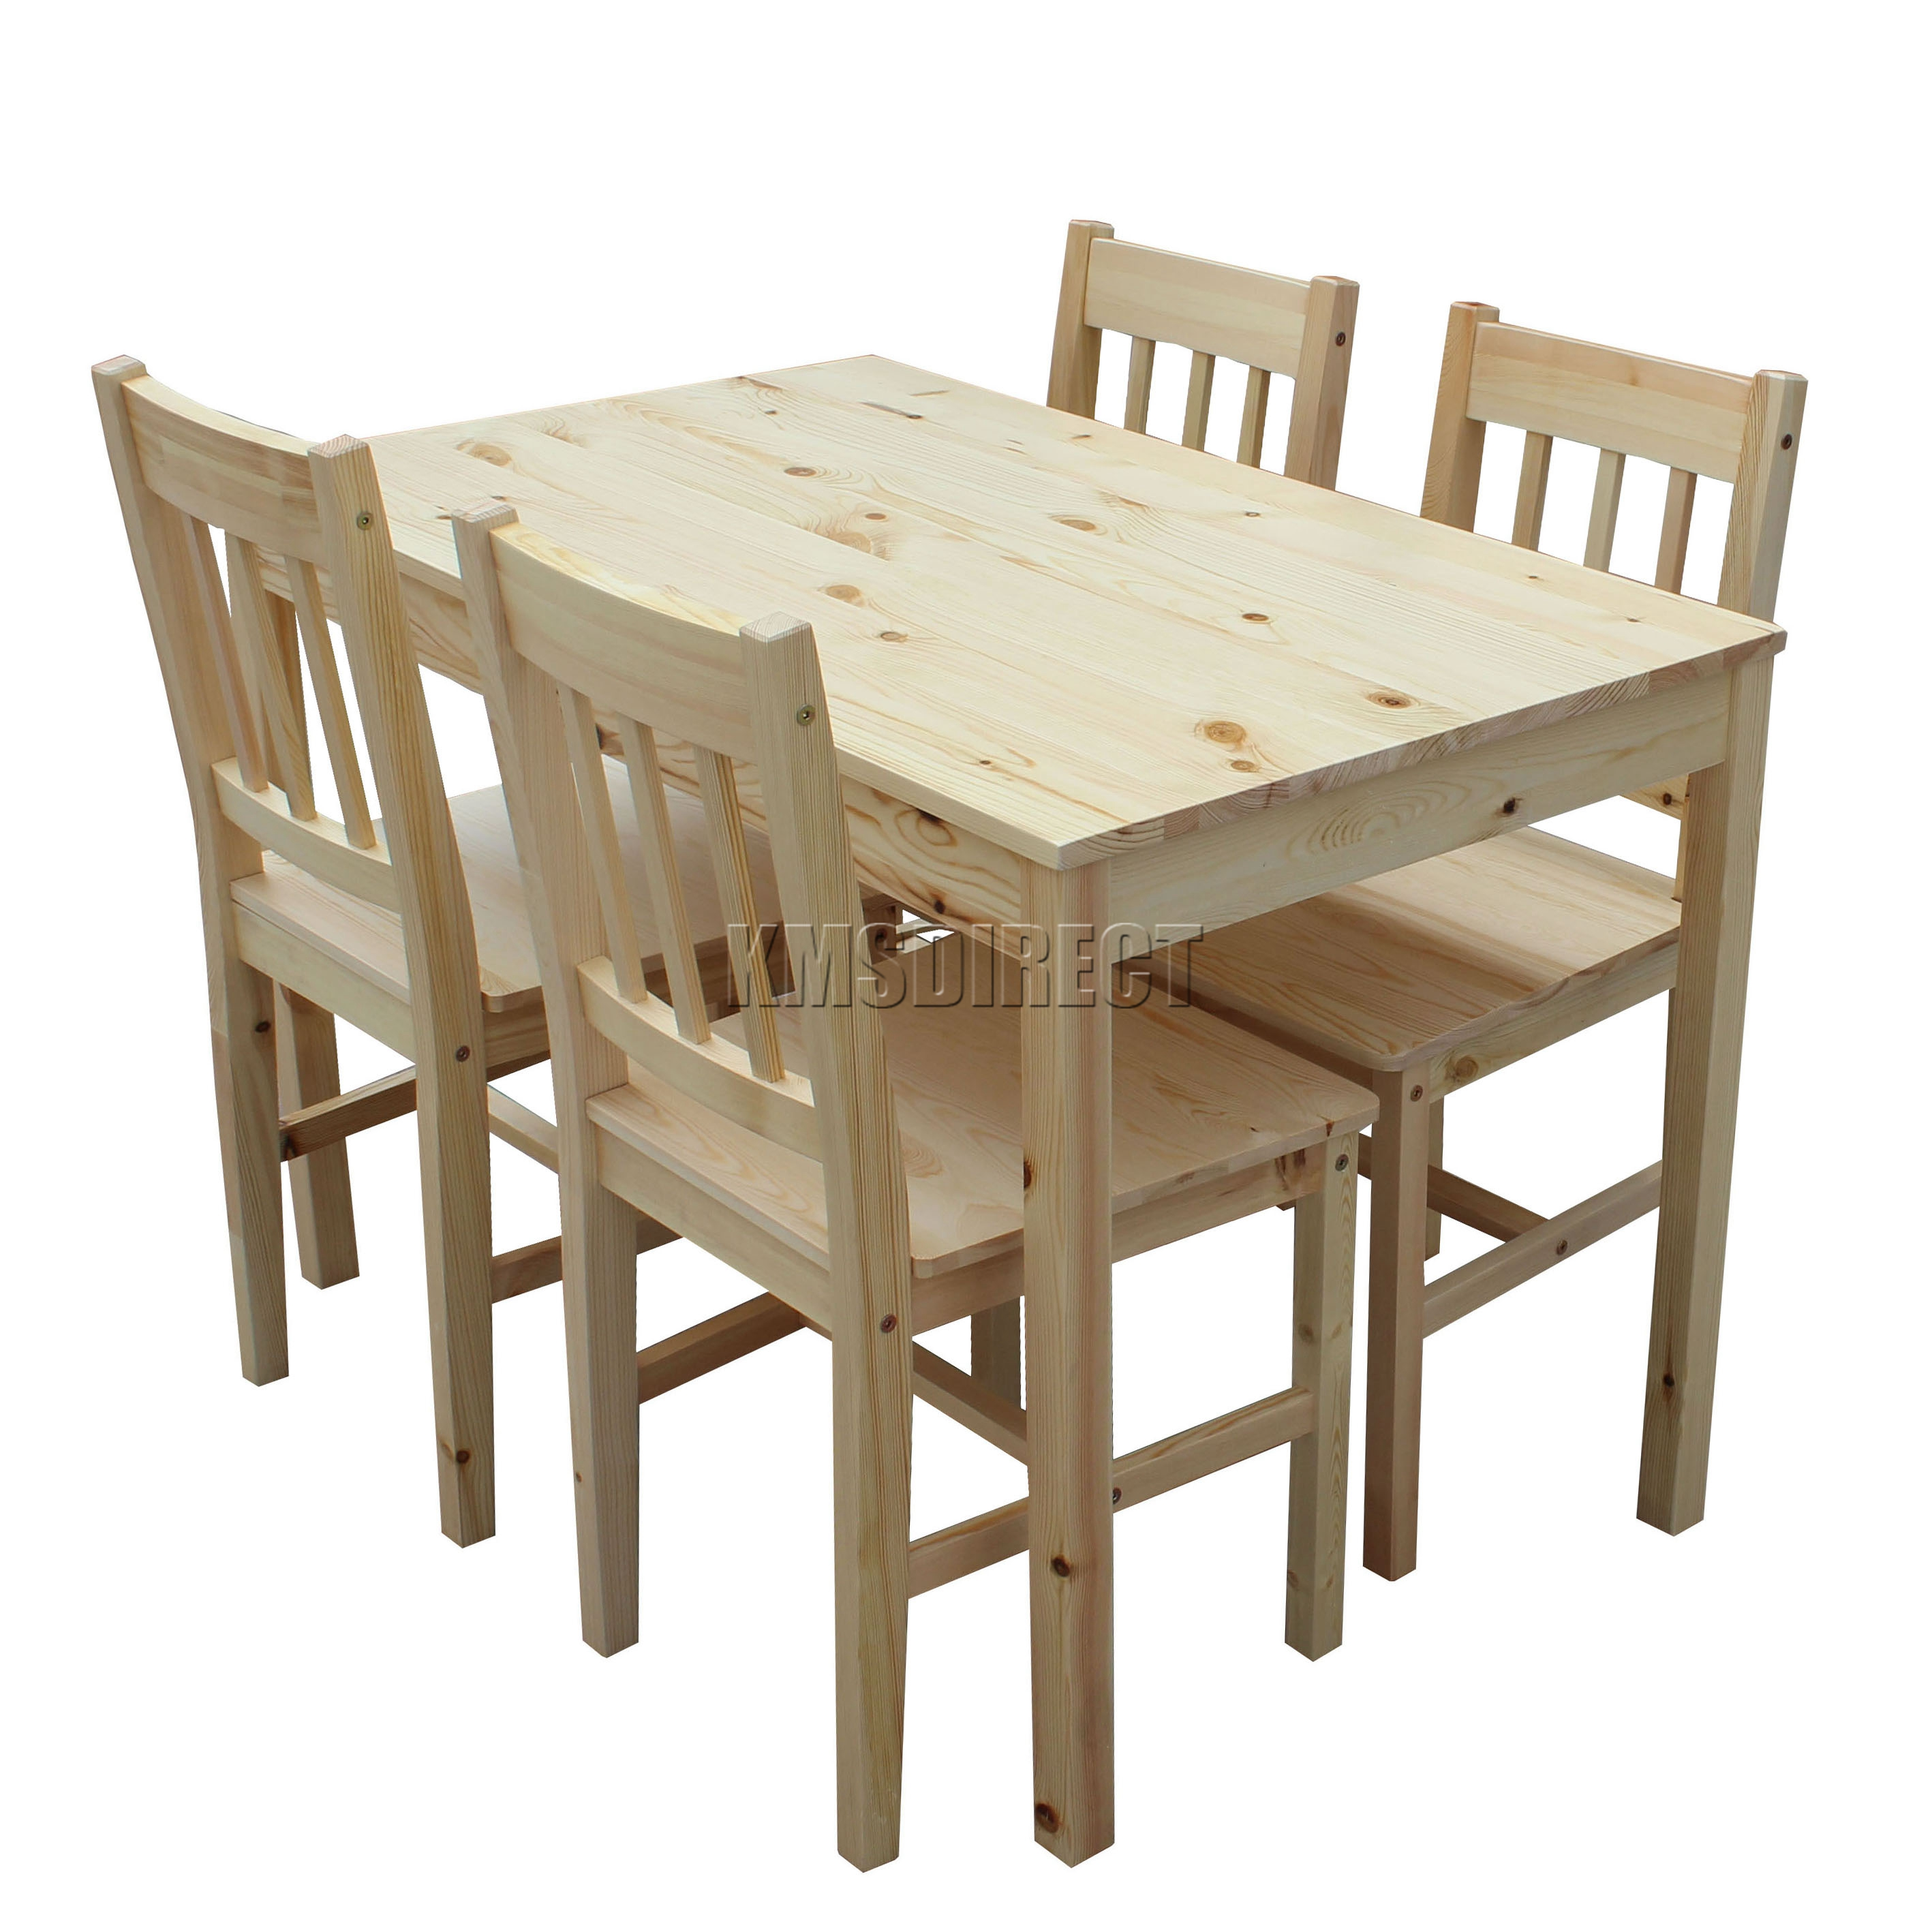 FoxHunter Quality Solid Wooden Dining Table and 4 Chairs  : DINING TABLE 4 CHAIR WOOD DS02 PINE KMSWM01 from www.ebay.co.uk size 2835 x 2835 jpeg 1450kB